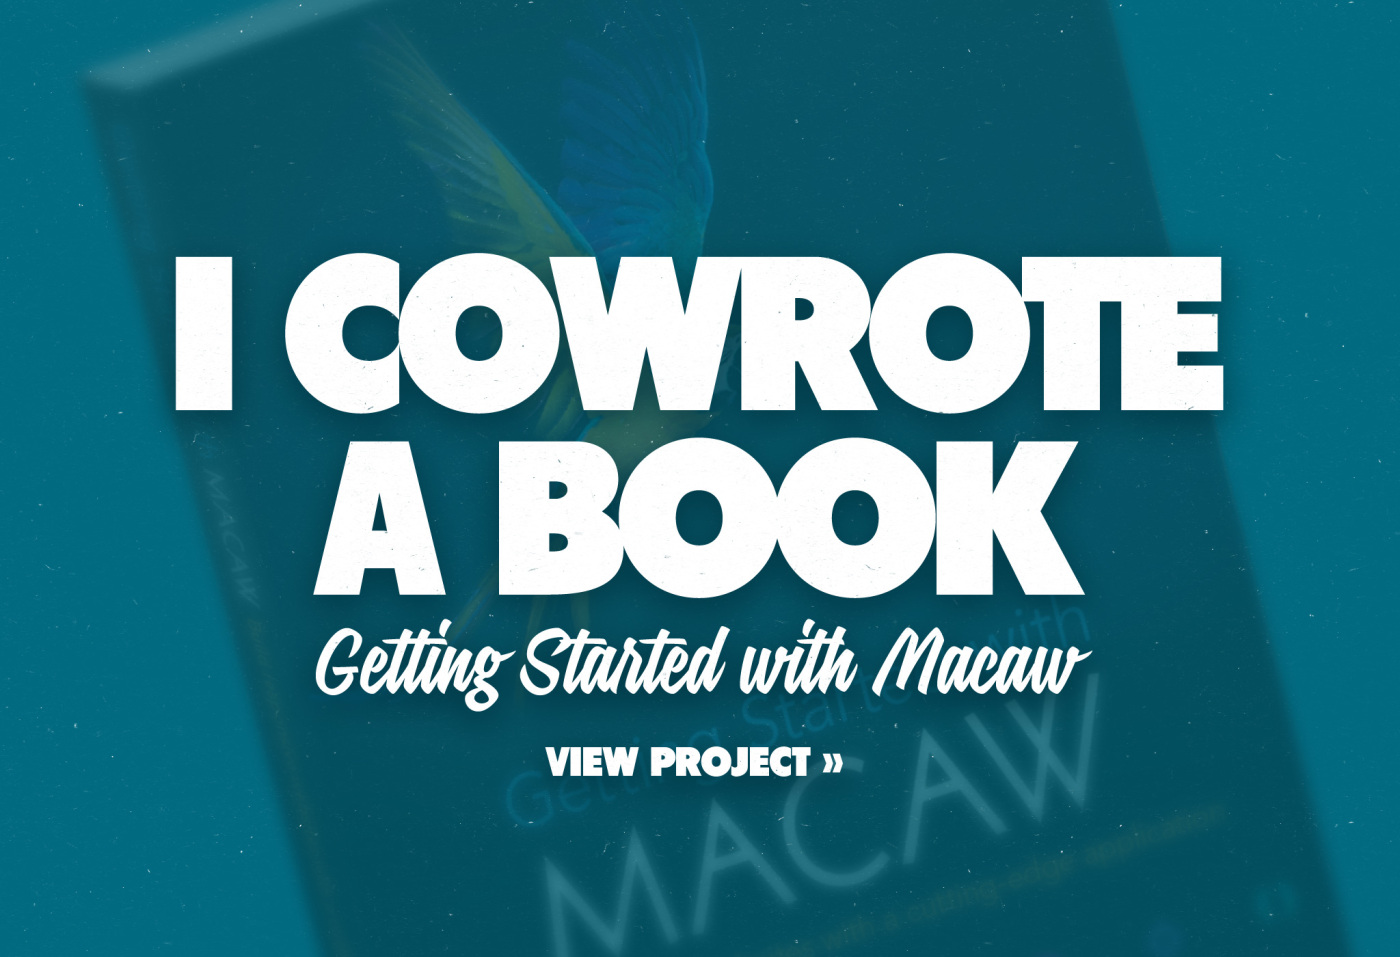 Macaw-Book-slide